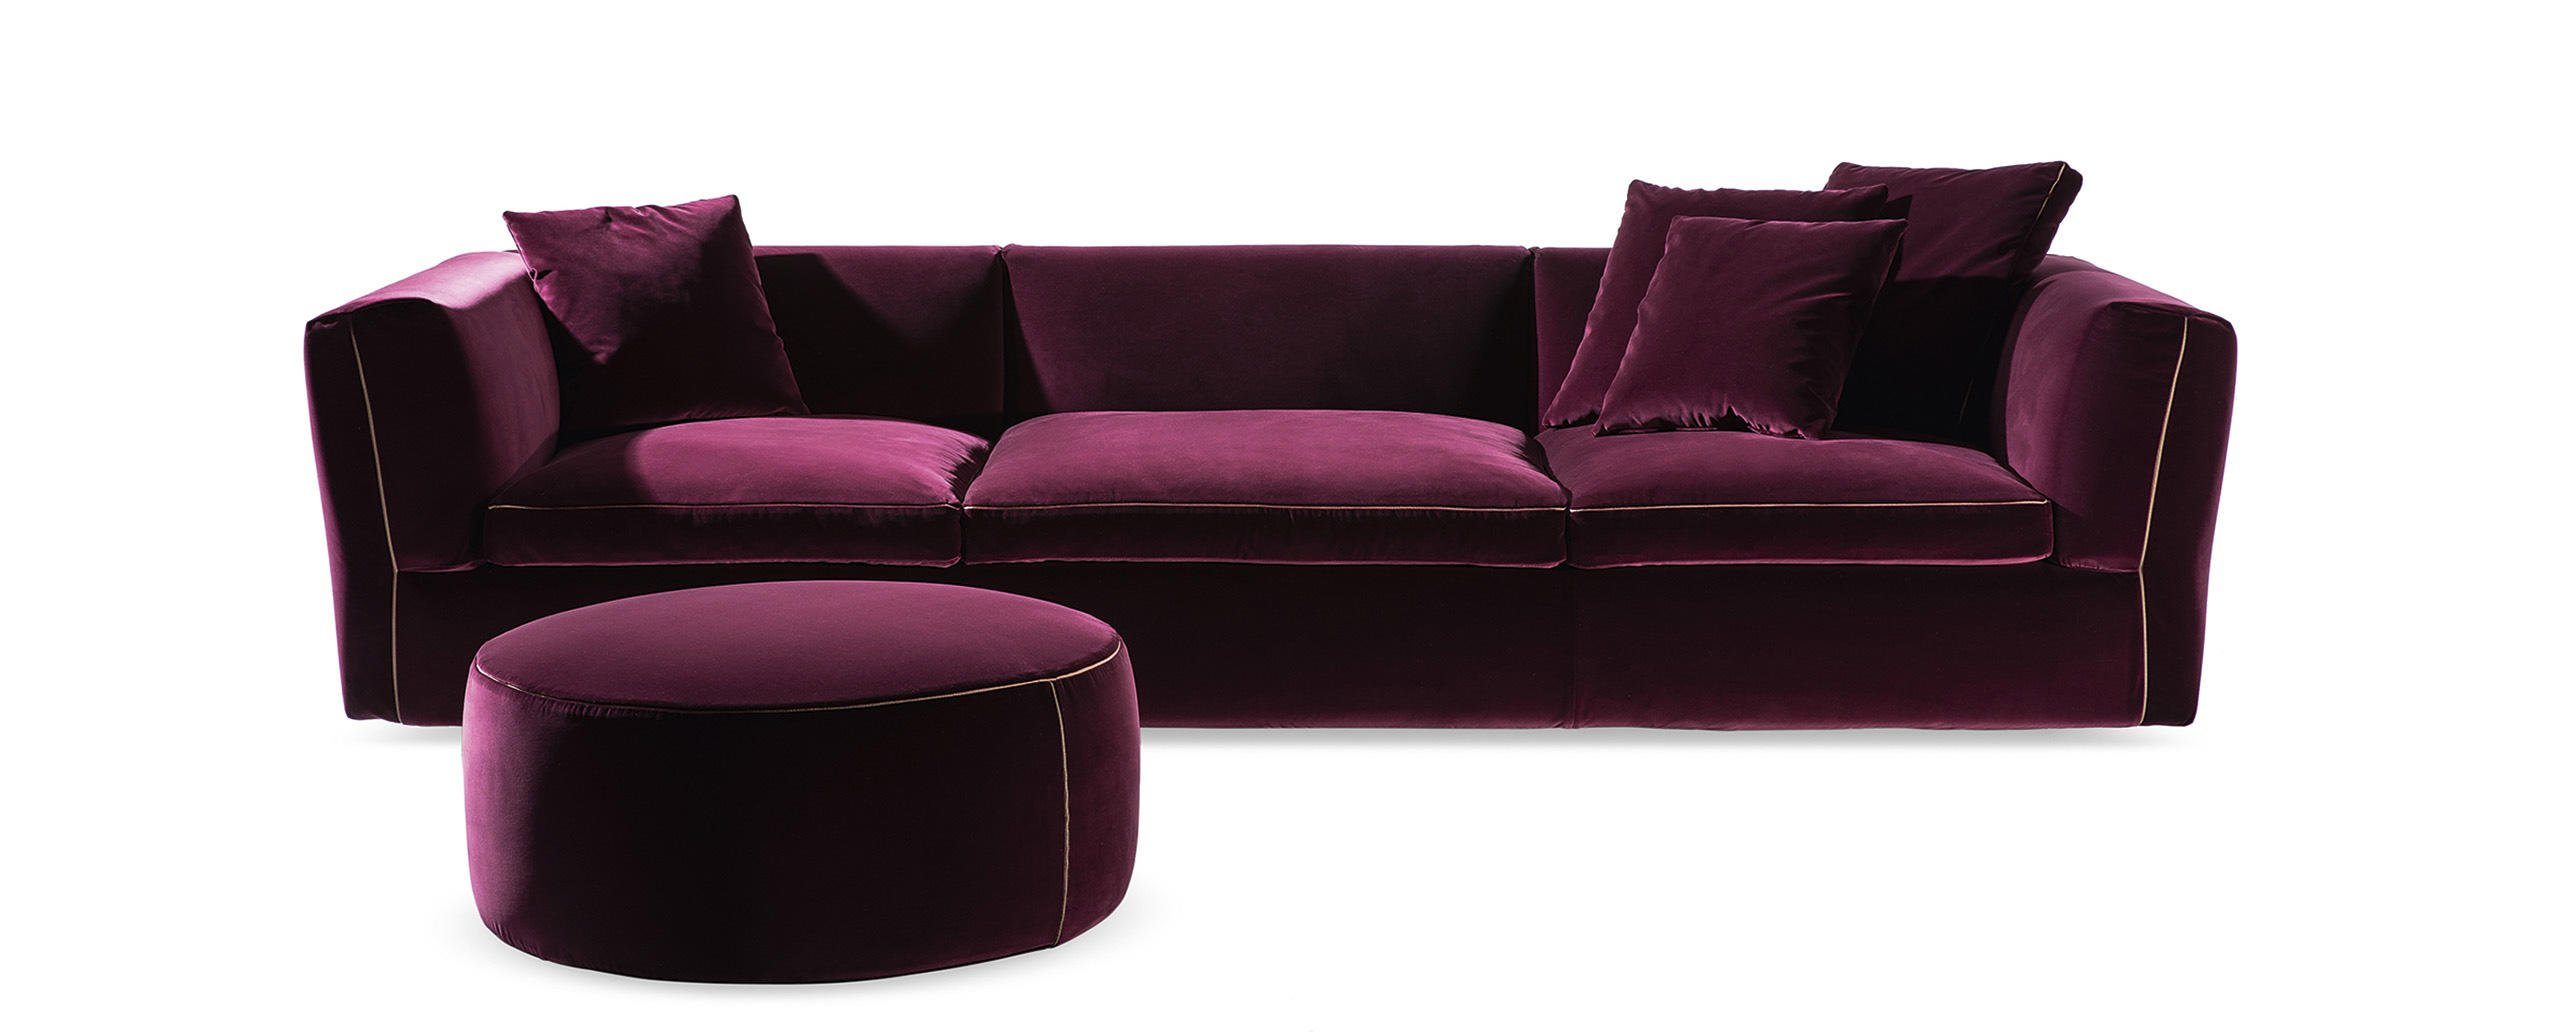 4_cassina_dress-up_sofa_system_rodolfo_dordoni